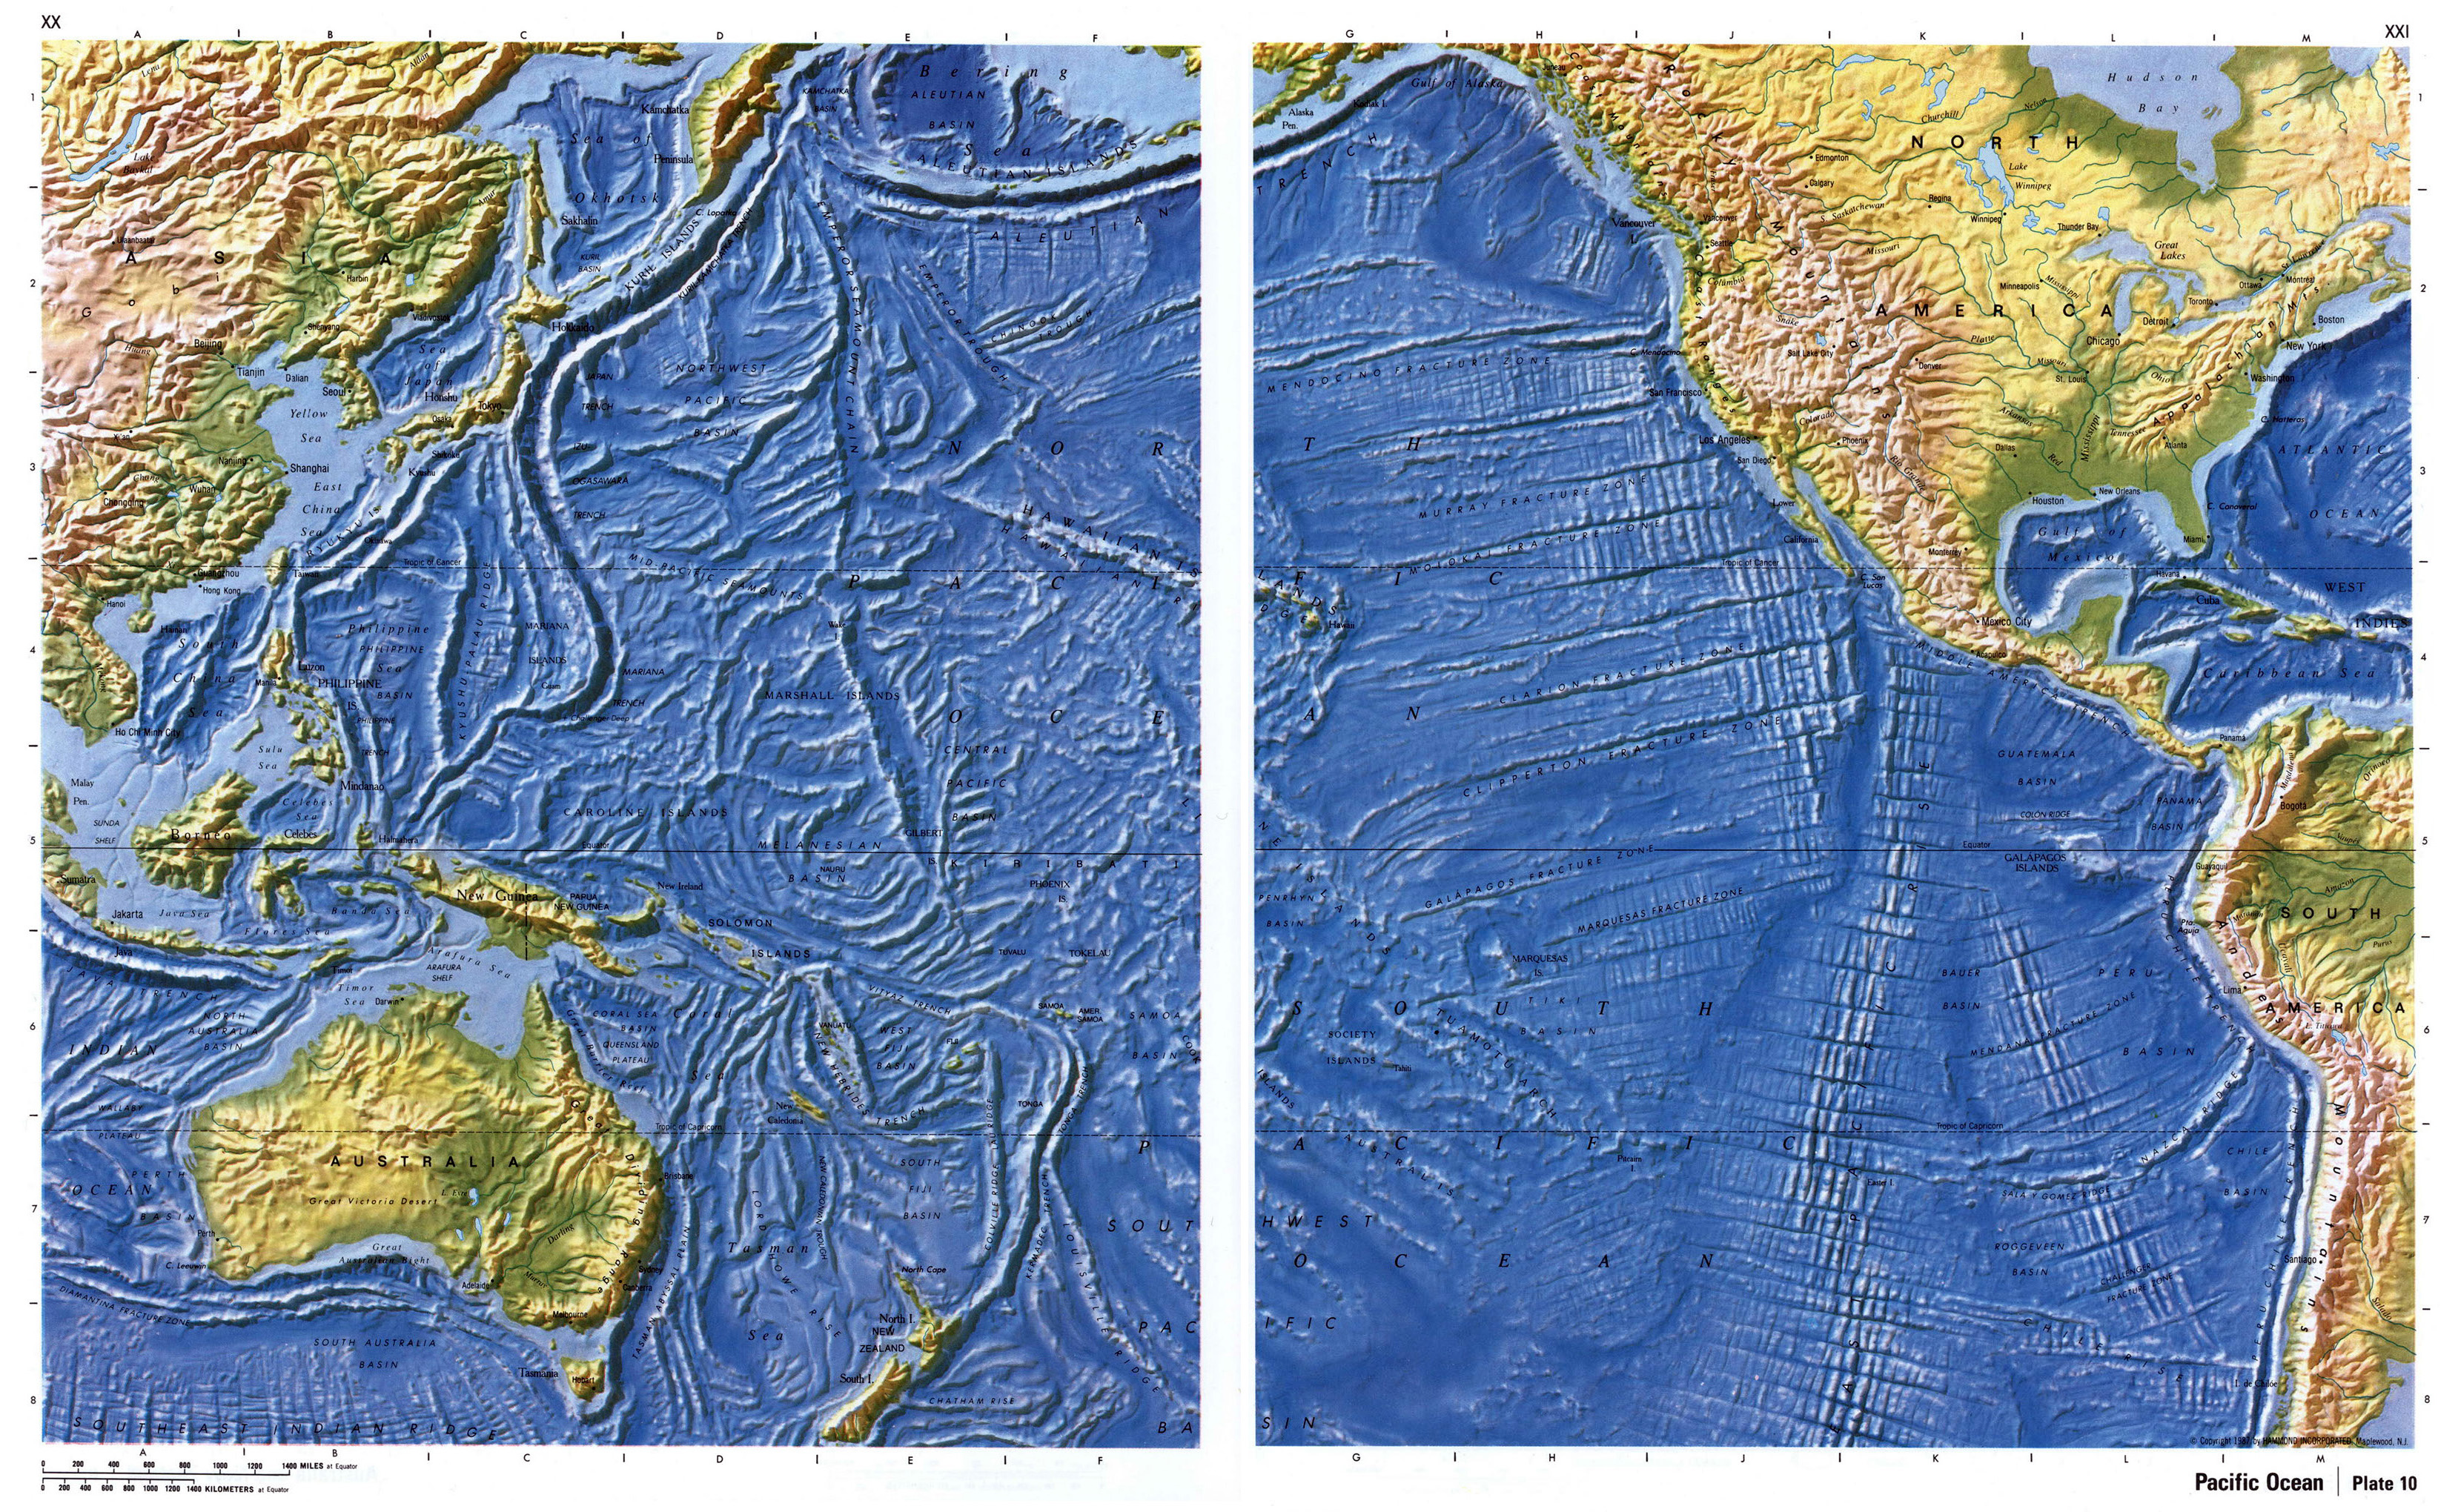 Relief Map Of The World.Large Detailed Relief Map Of Pacific Ocean Other Maps Of The World